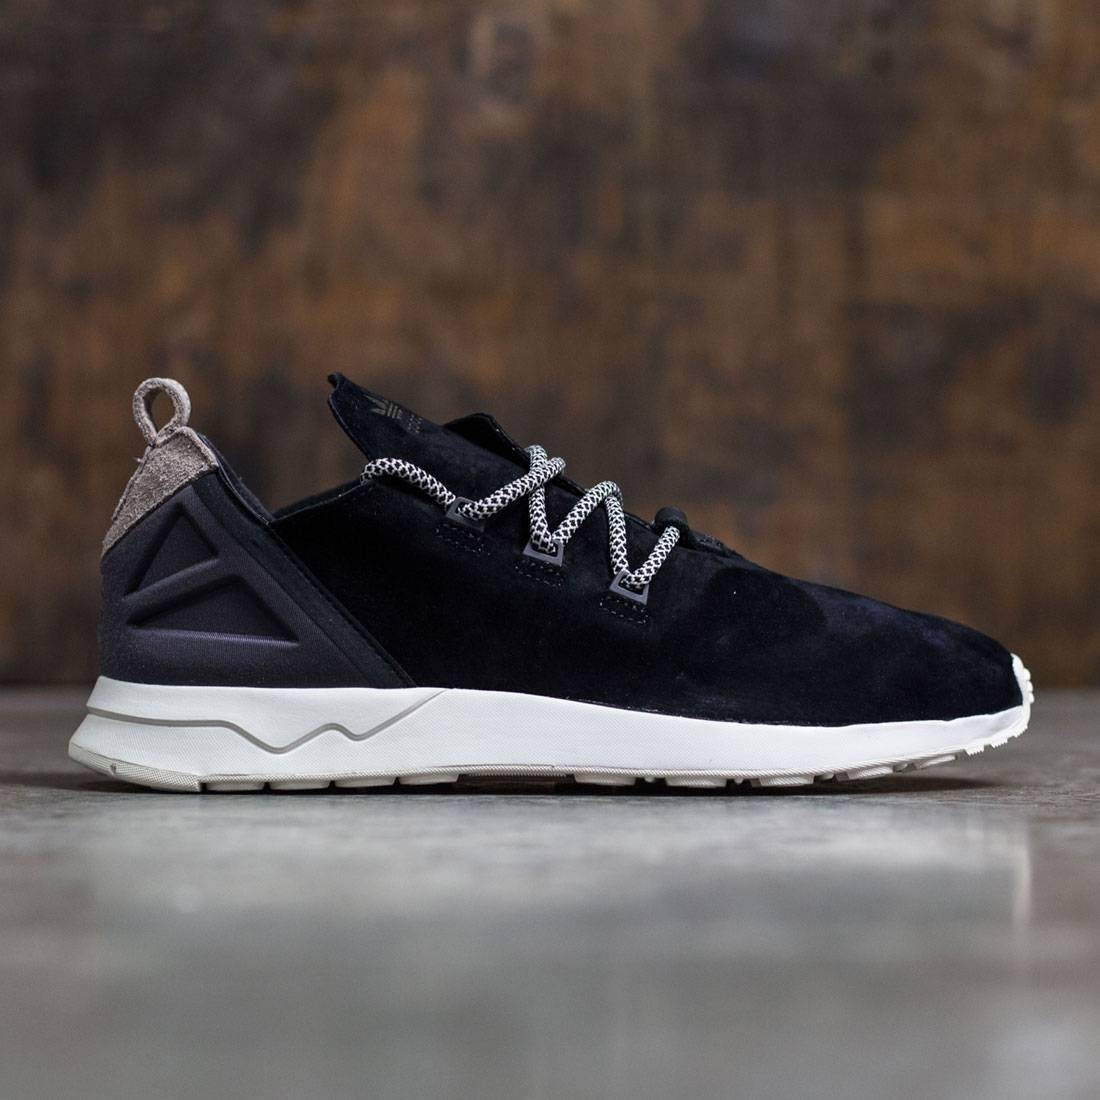 Zx Flux Adv X Sale Online, UP TO 52% OFF